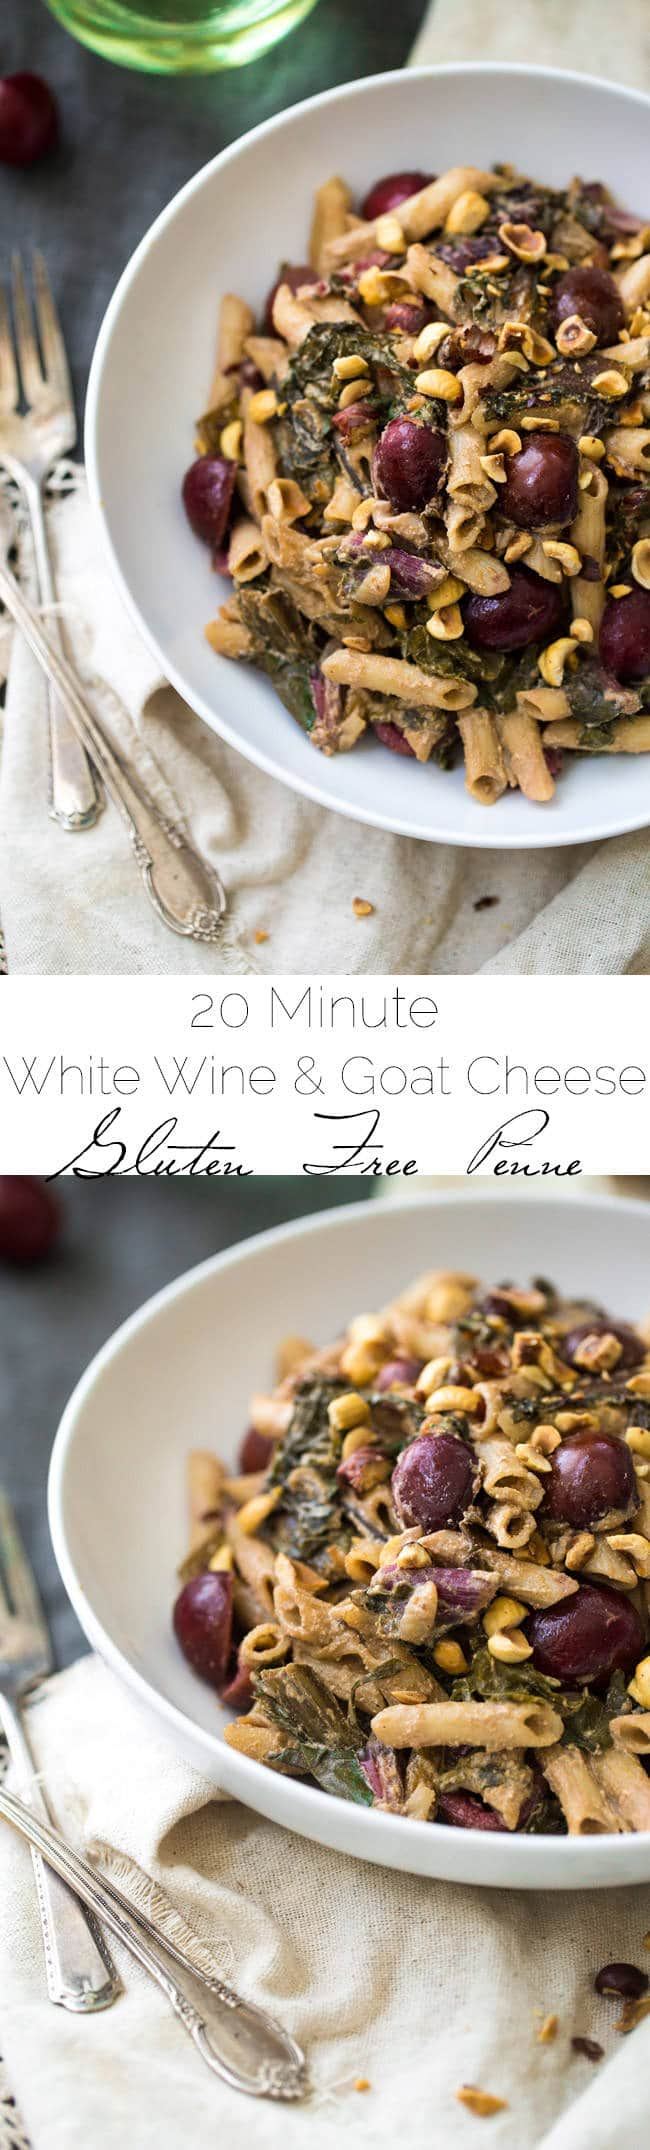 20 Minute White Wine and Goat Cheese Pasta with Rainbow Chard Recipe - SO easy, Gluten free and creamy!  Perfect for a weeknight or romantic dinner at home! | Foodfaithfitness.com | #recipe